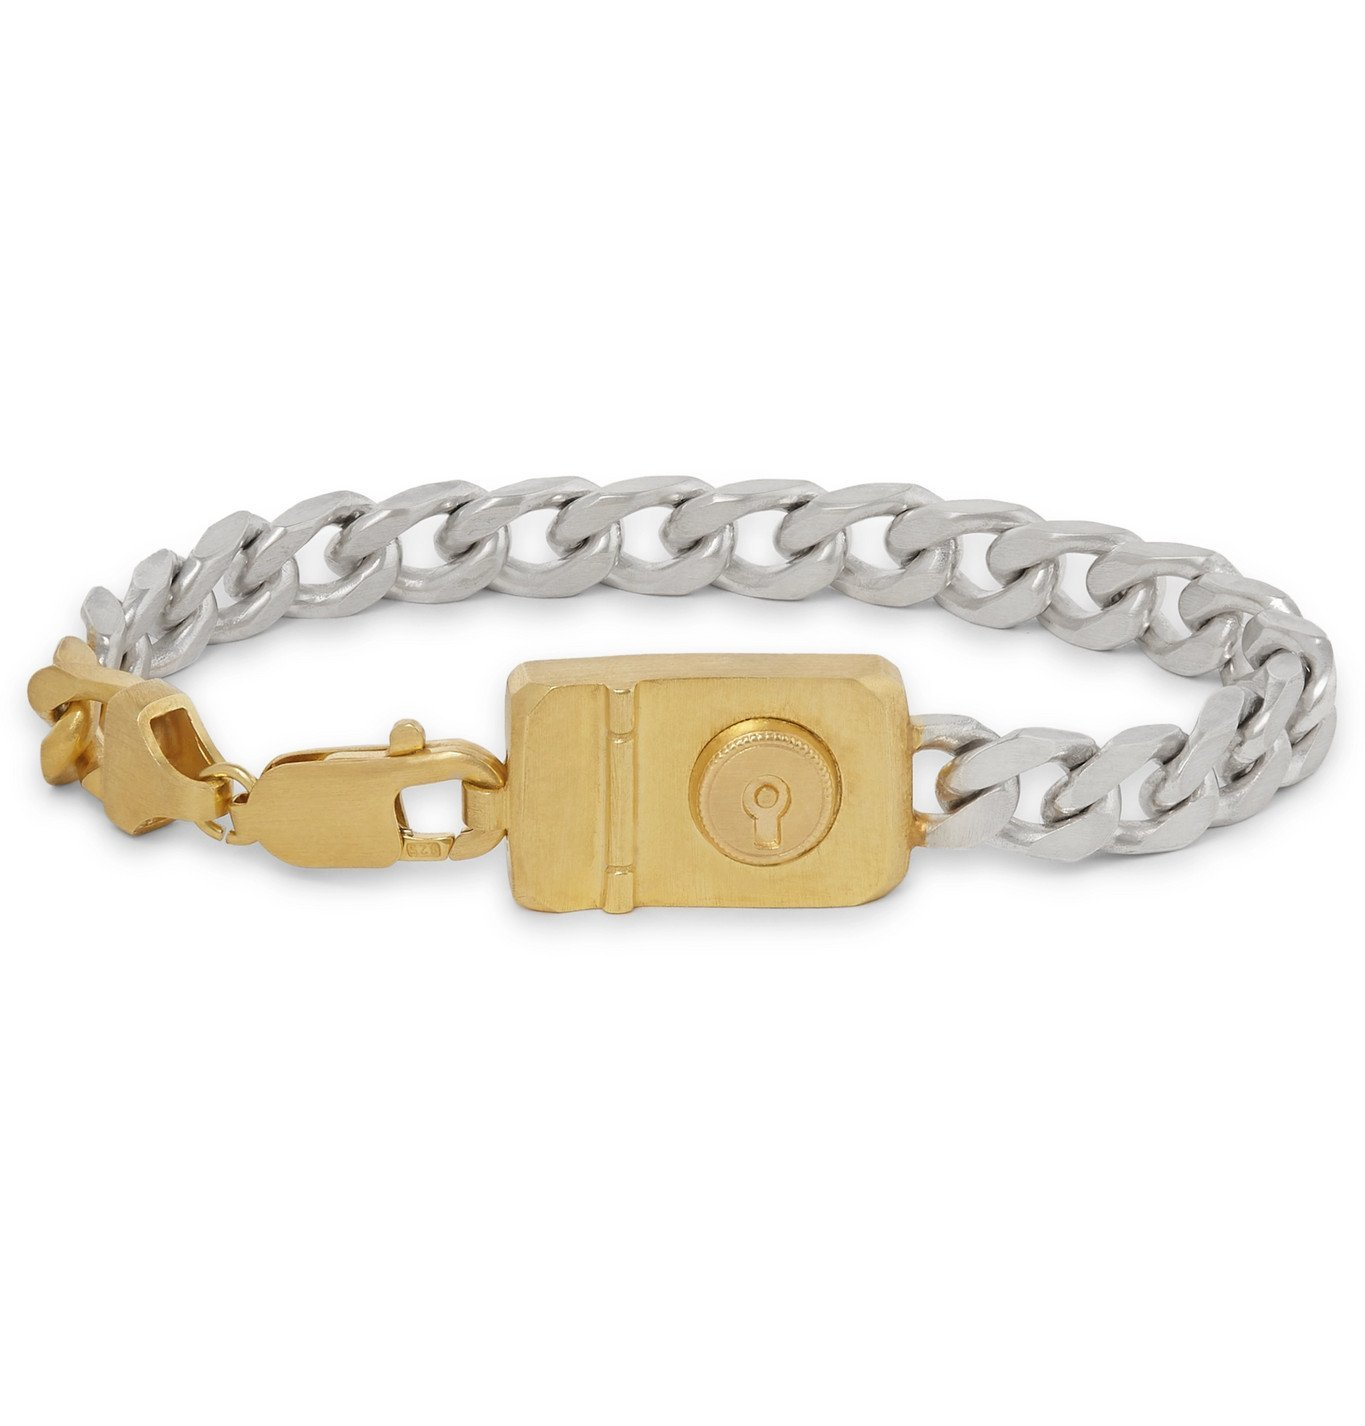 Dunhill - Sterling Silver and Gold-Tone Chain Bracelet - Silver